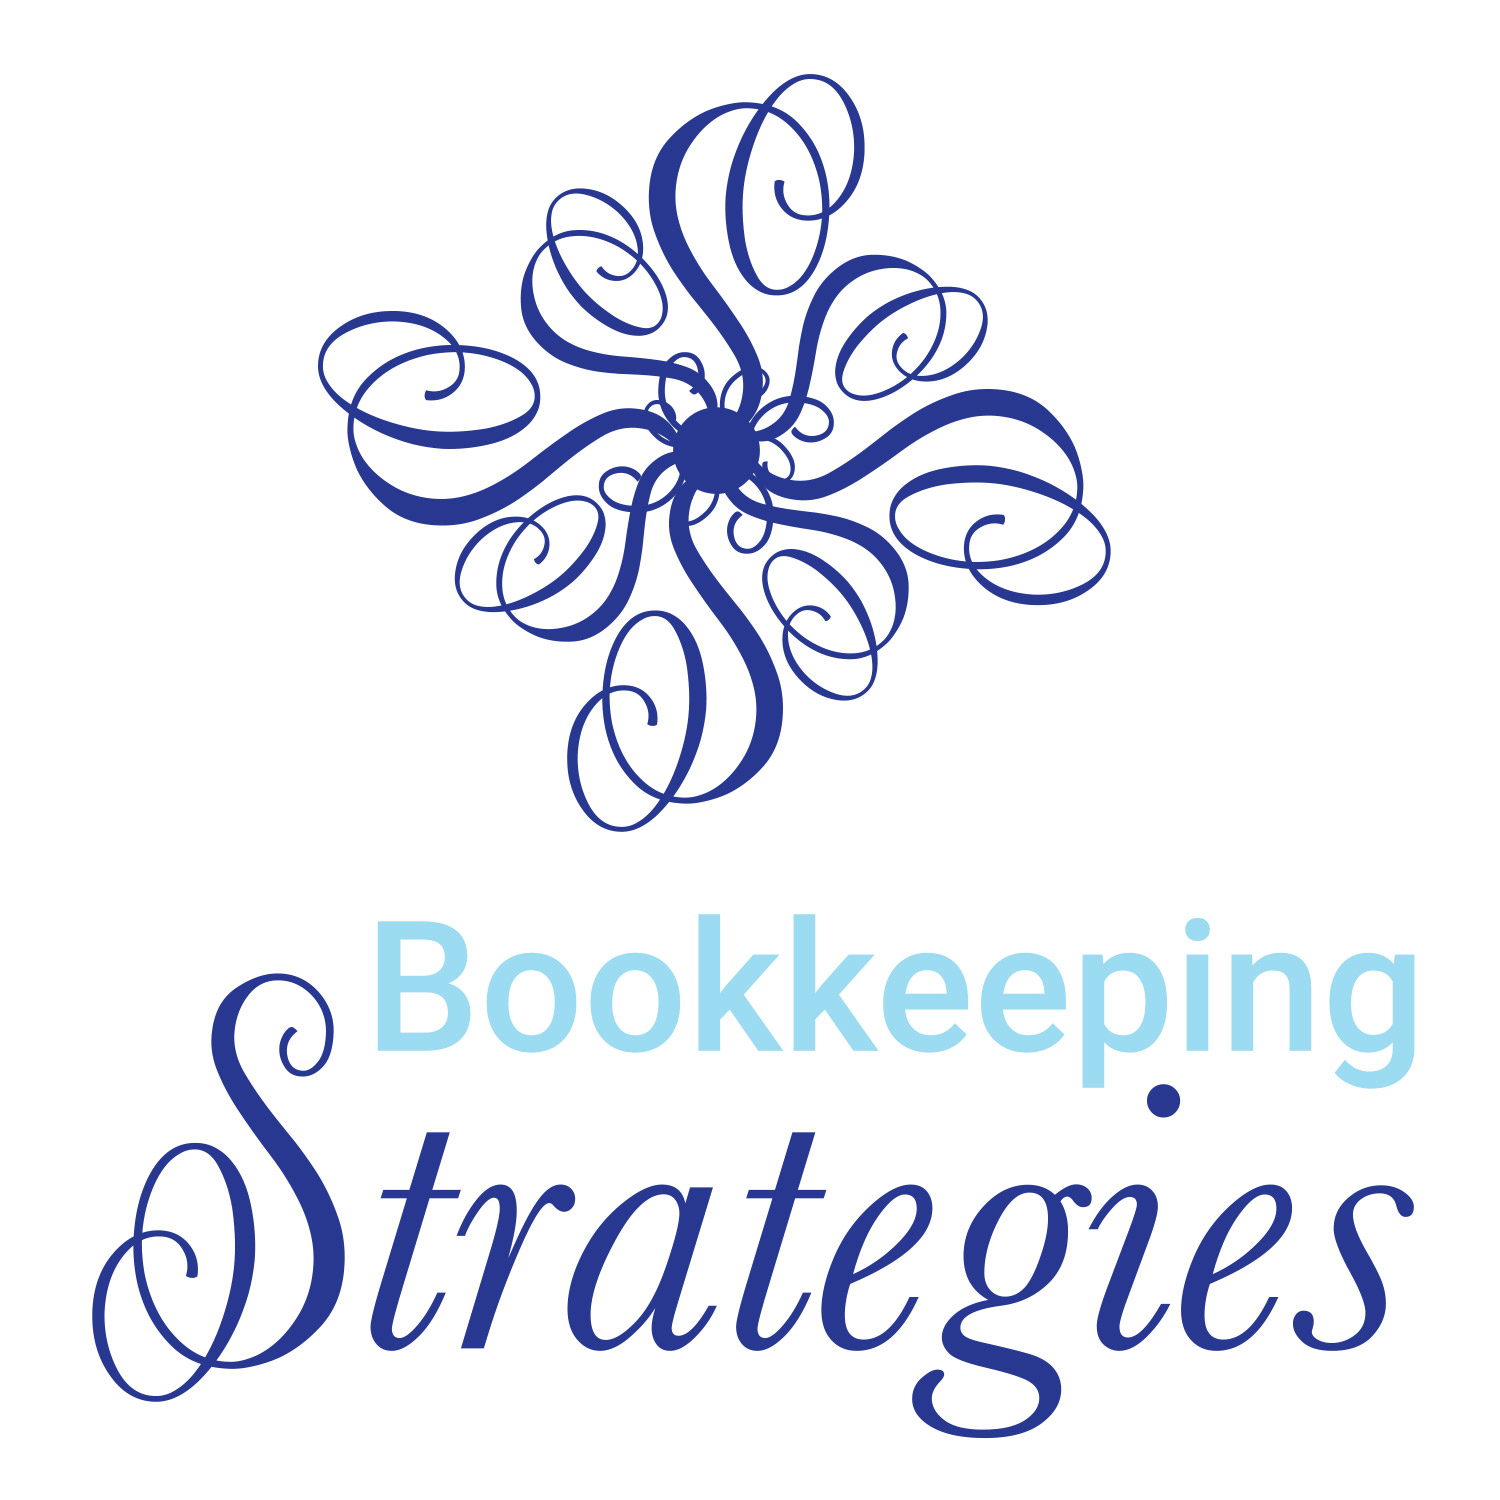 Bookkeeping Strategies - Bend, OR 97702 - (541)633-4288 | ShowMeLocal.com